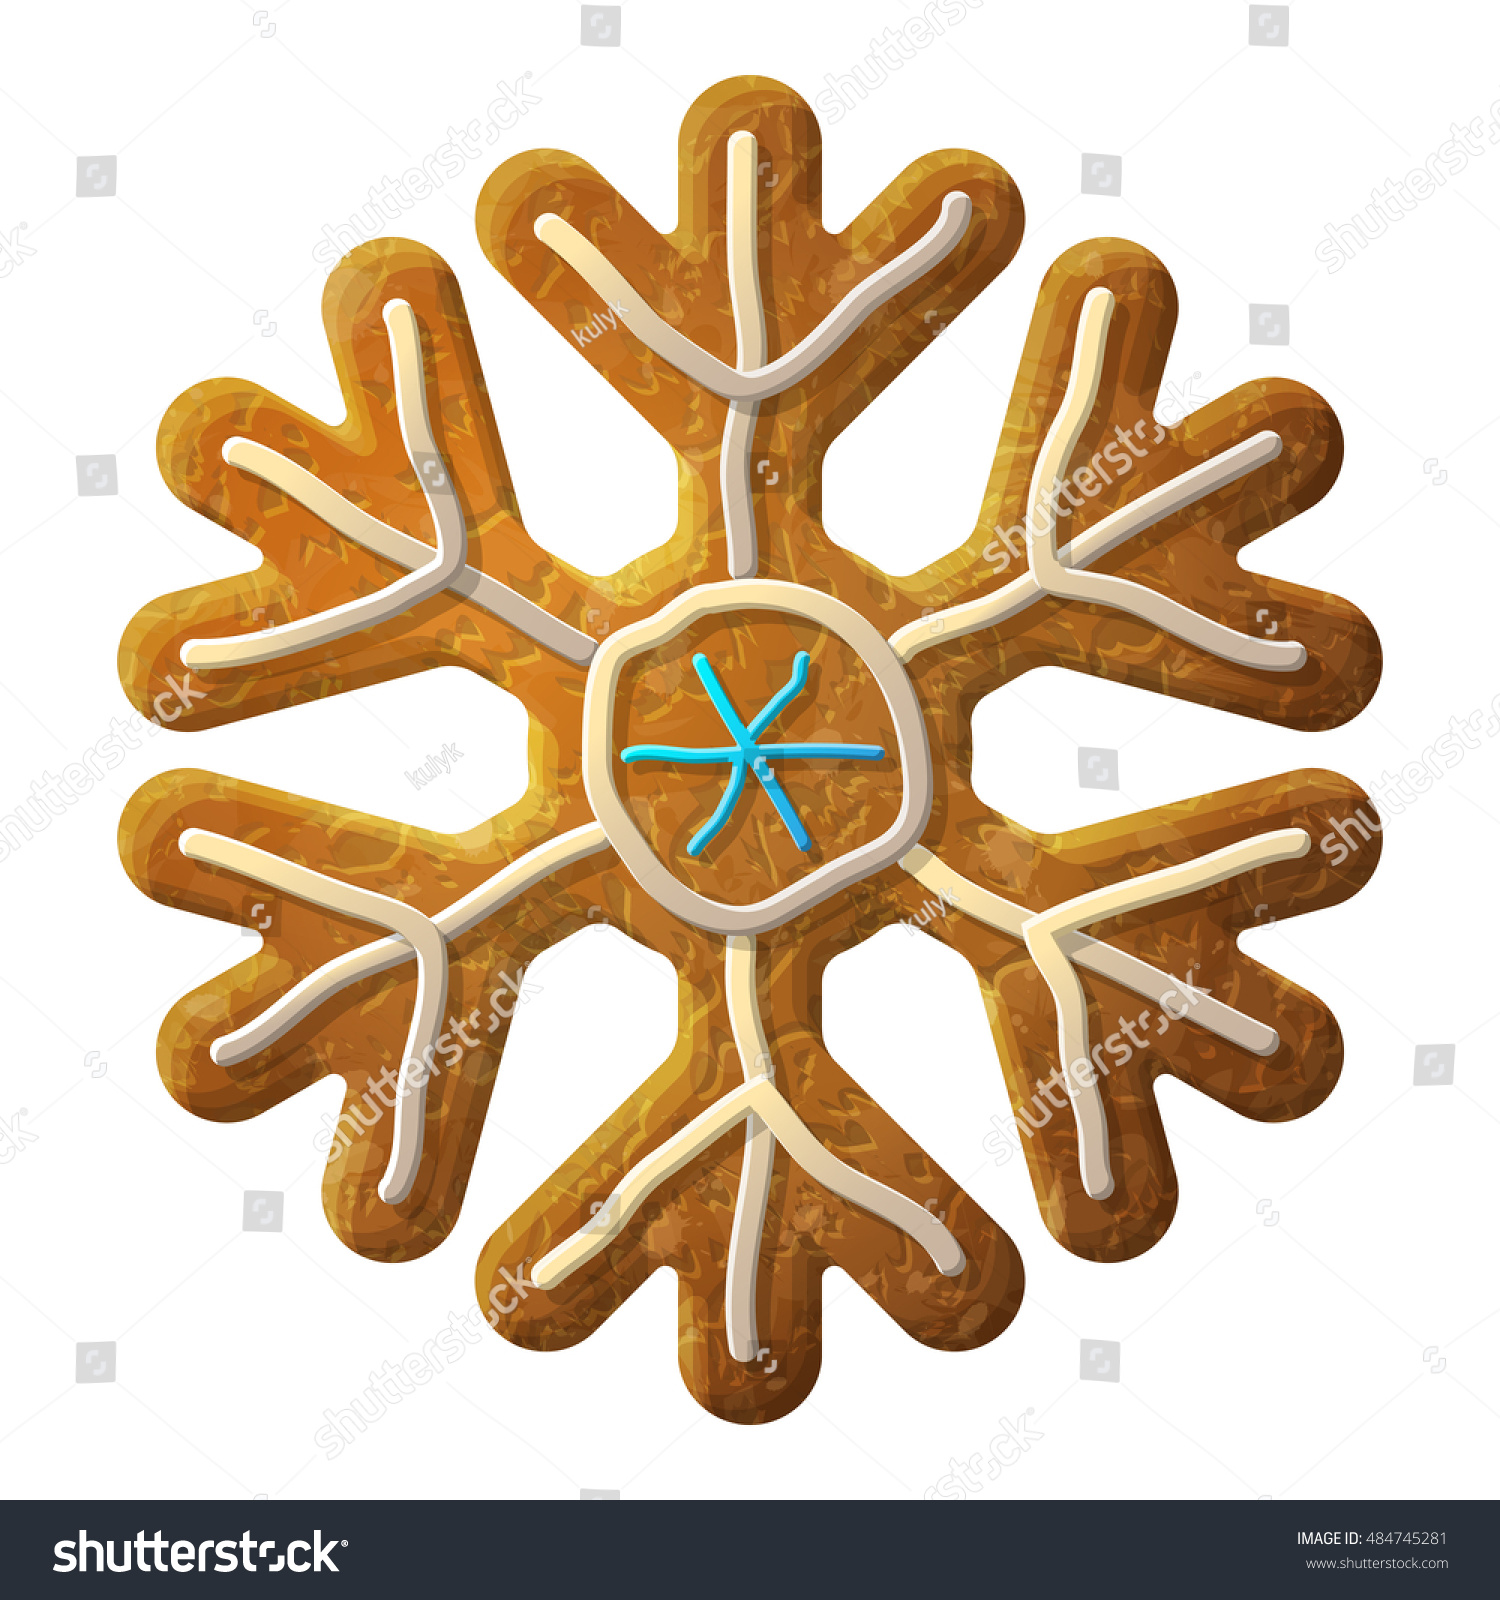 Gingerbread Snowflake Symbol Decorated Colored Icing Holiday Cookie In Shape Of Snow Sign Design